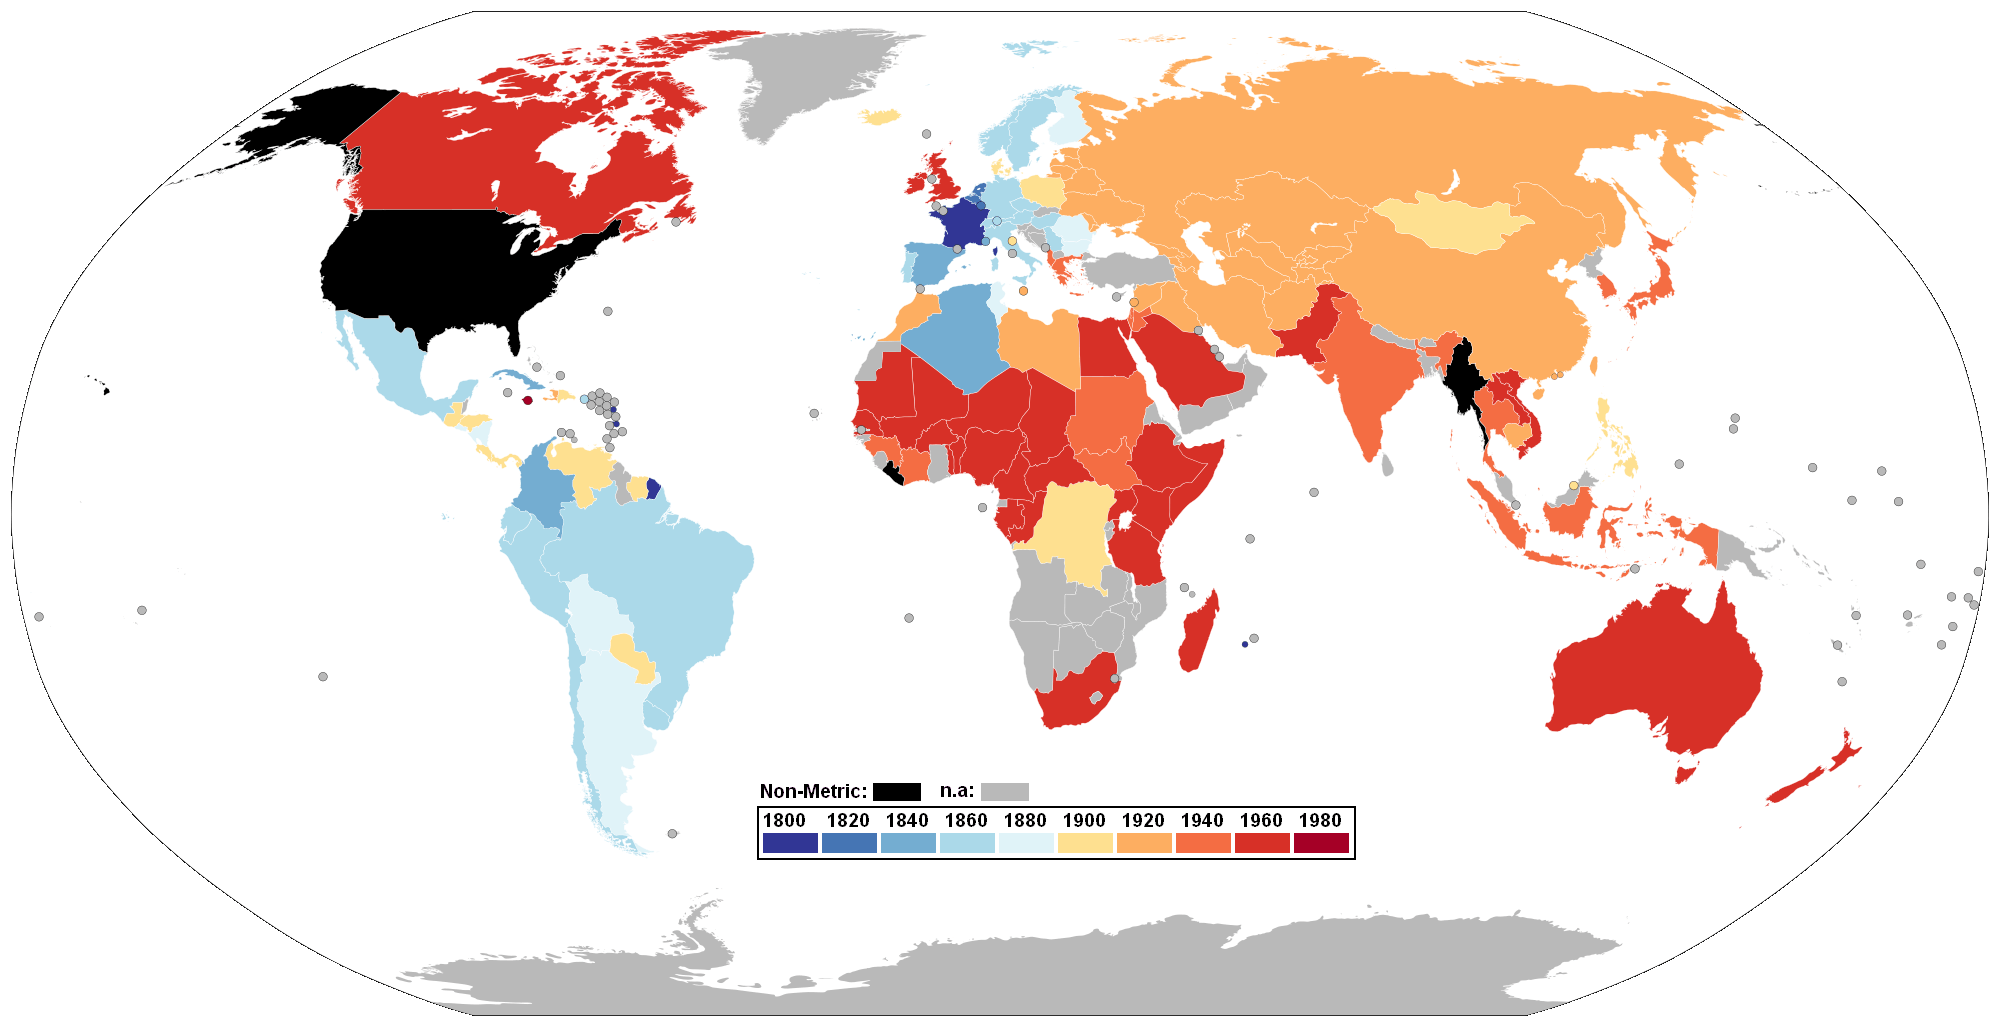 World Map showing Metrication, colour-coded by year of conversion. Using data from USMA (U.S. Metric Association)